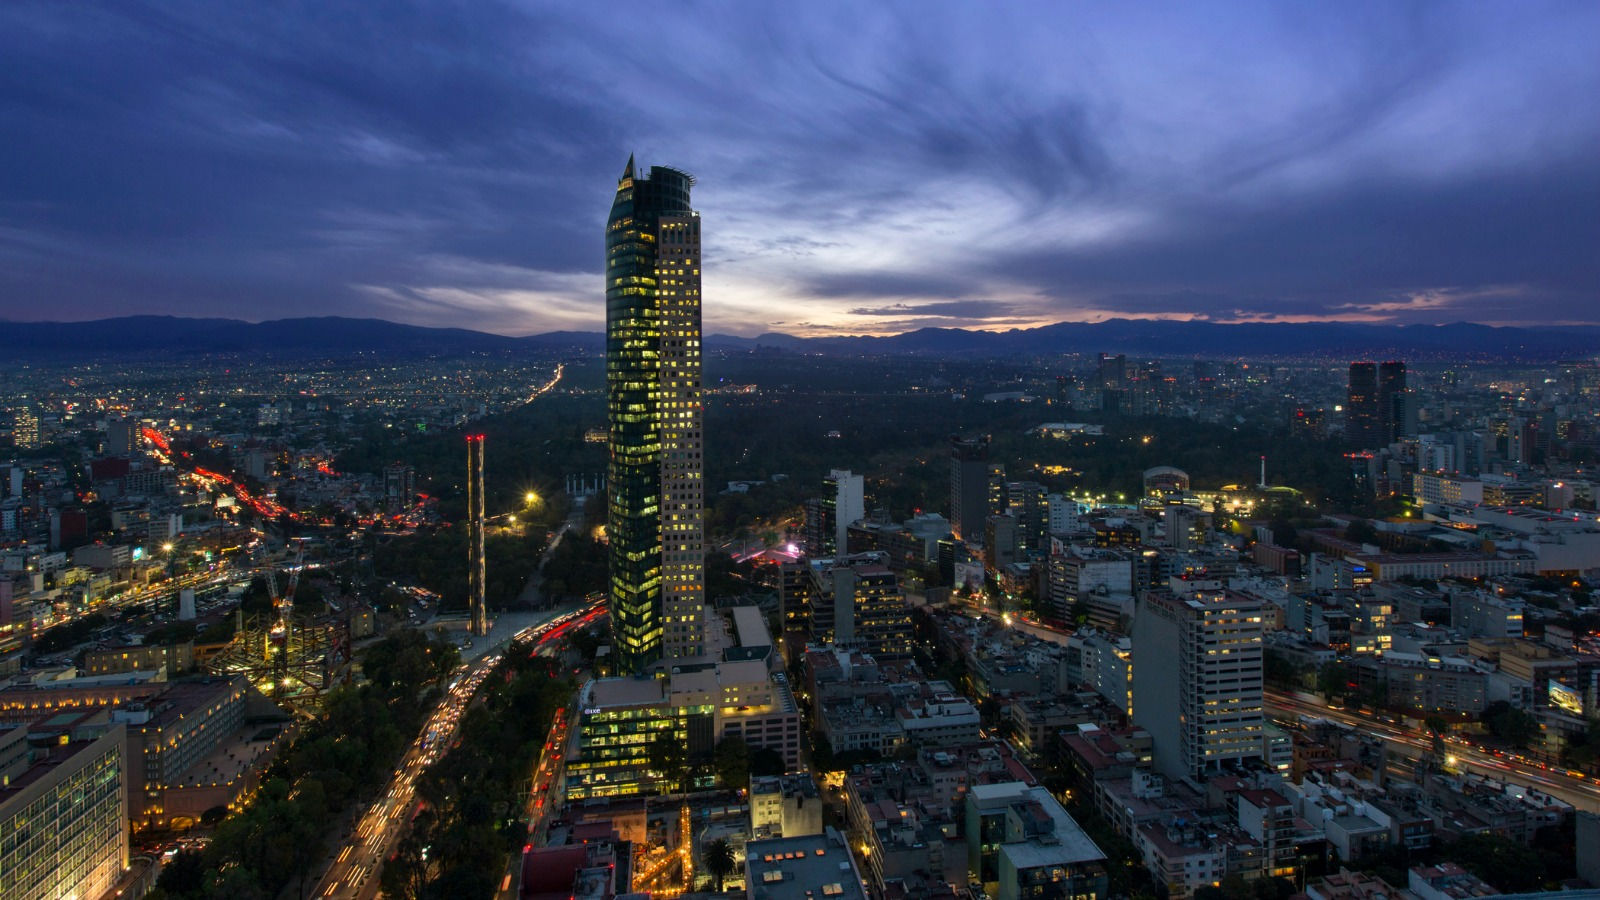 The St. Regis Mexico City - Features